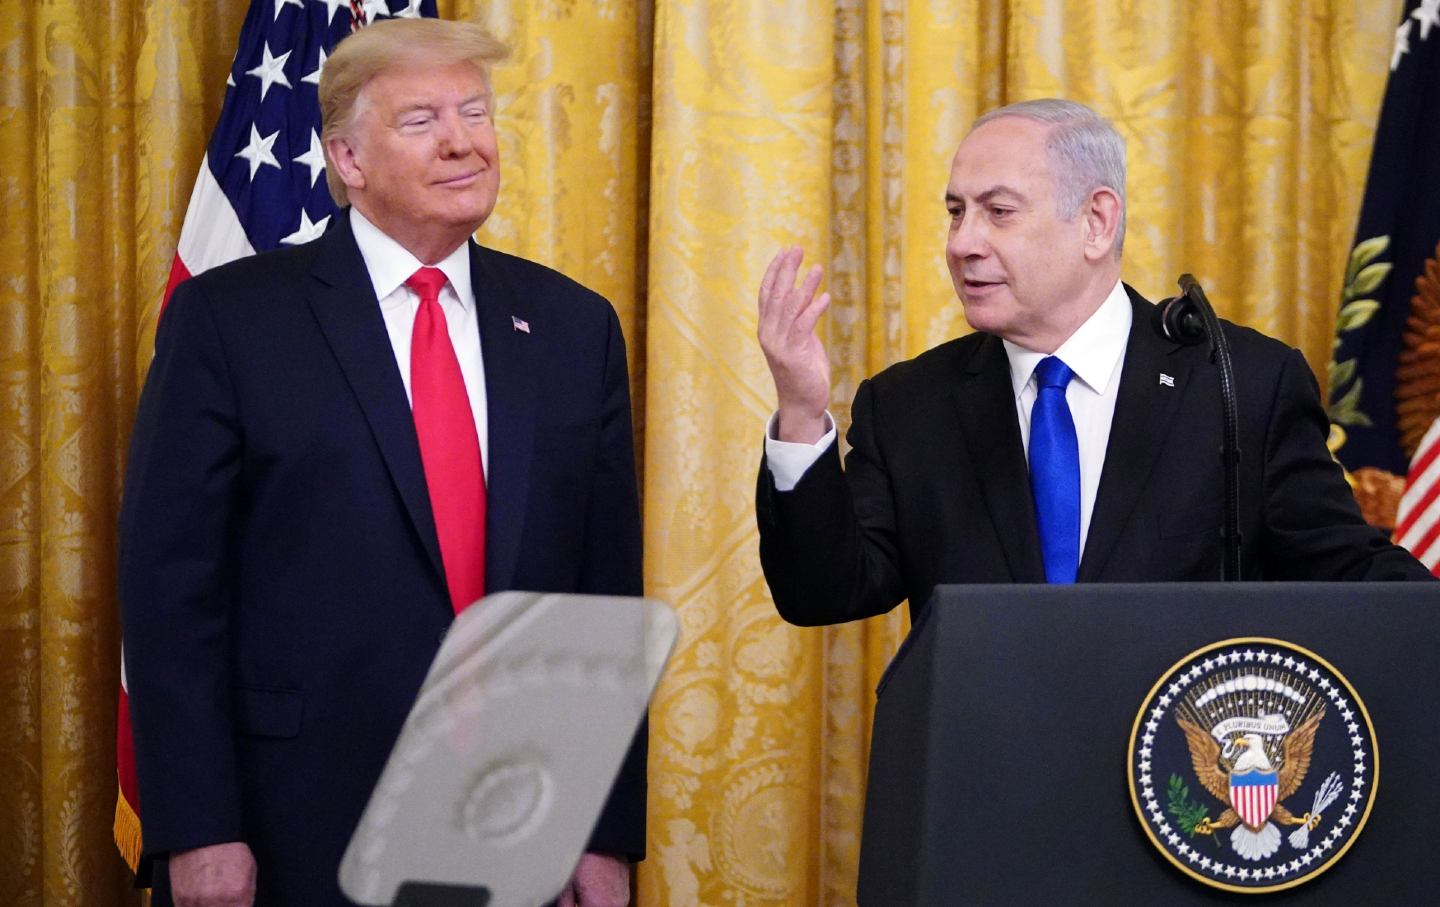 Trump and Netenyahu speaking at the White House